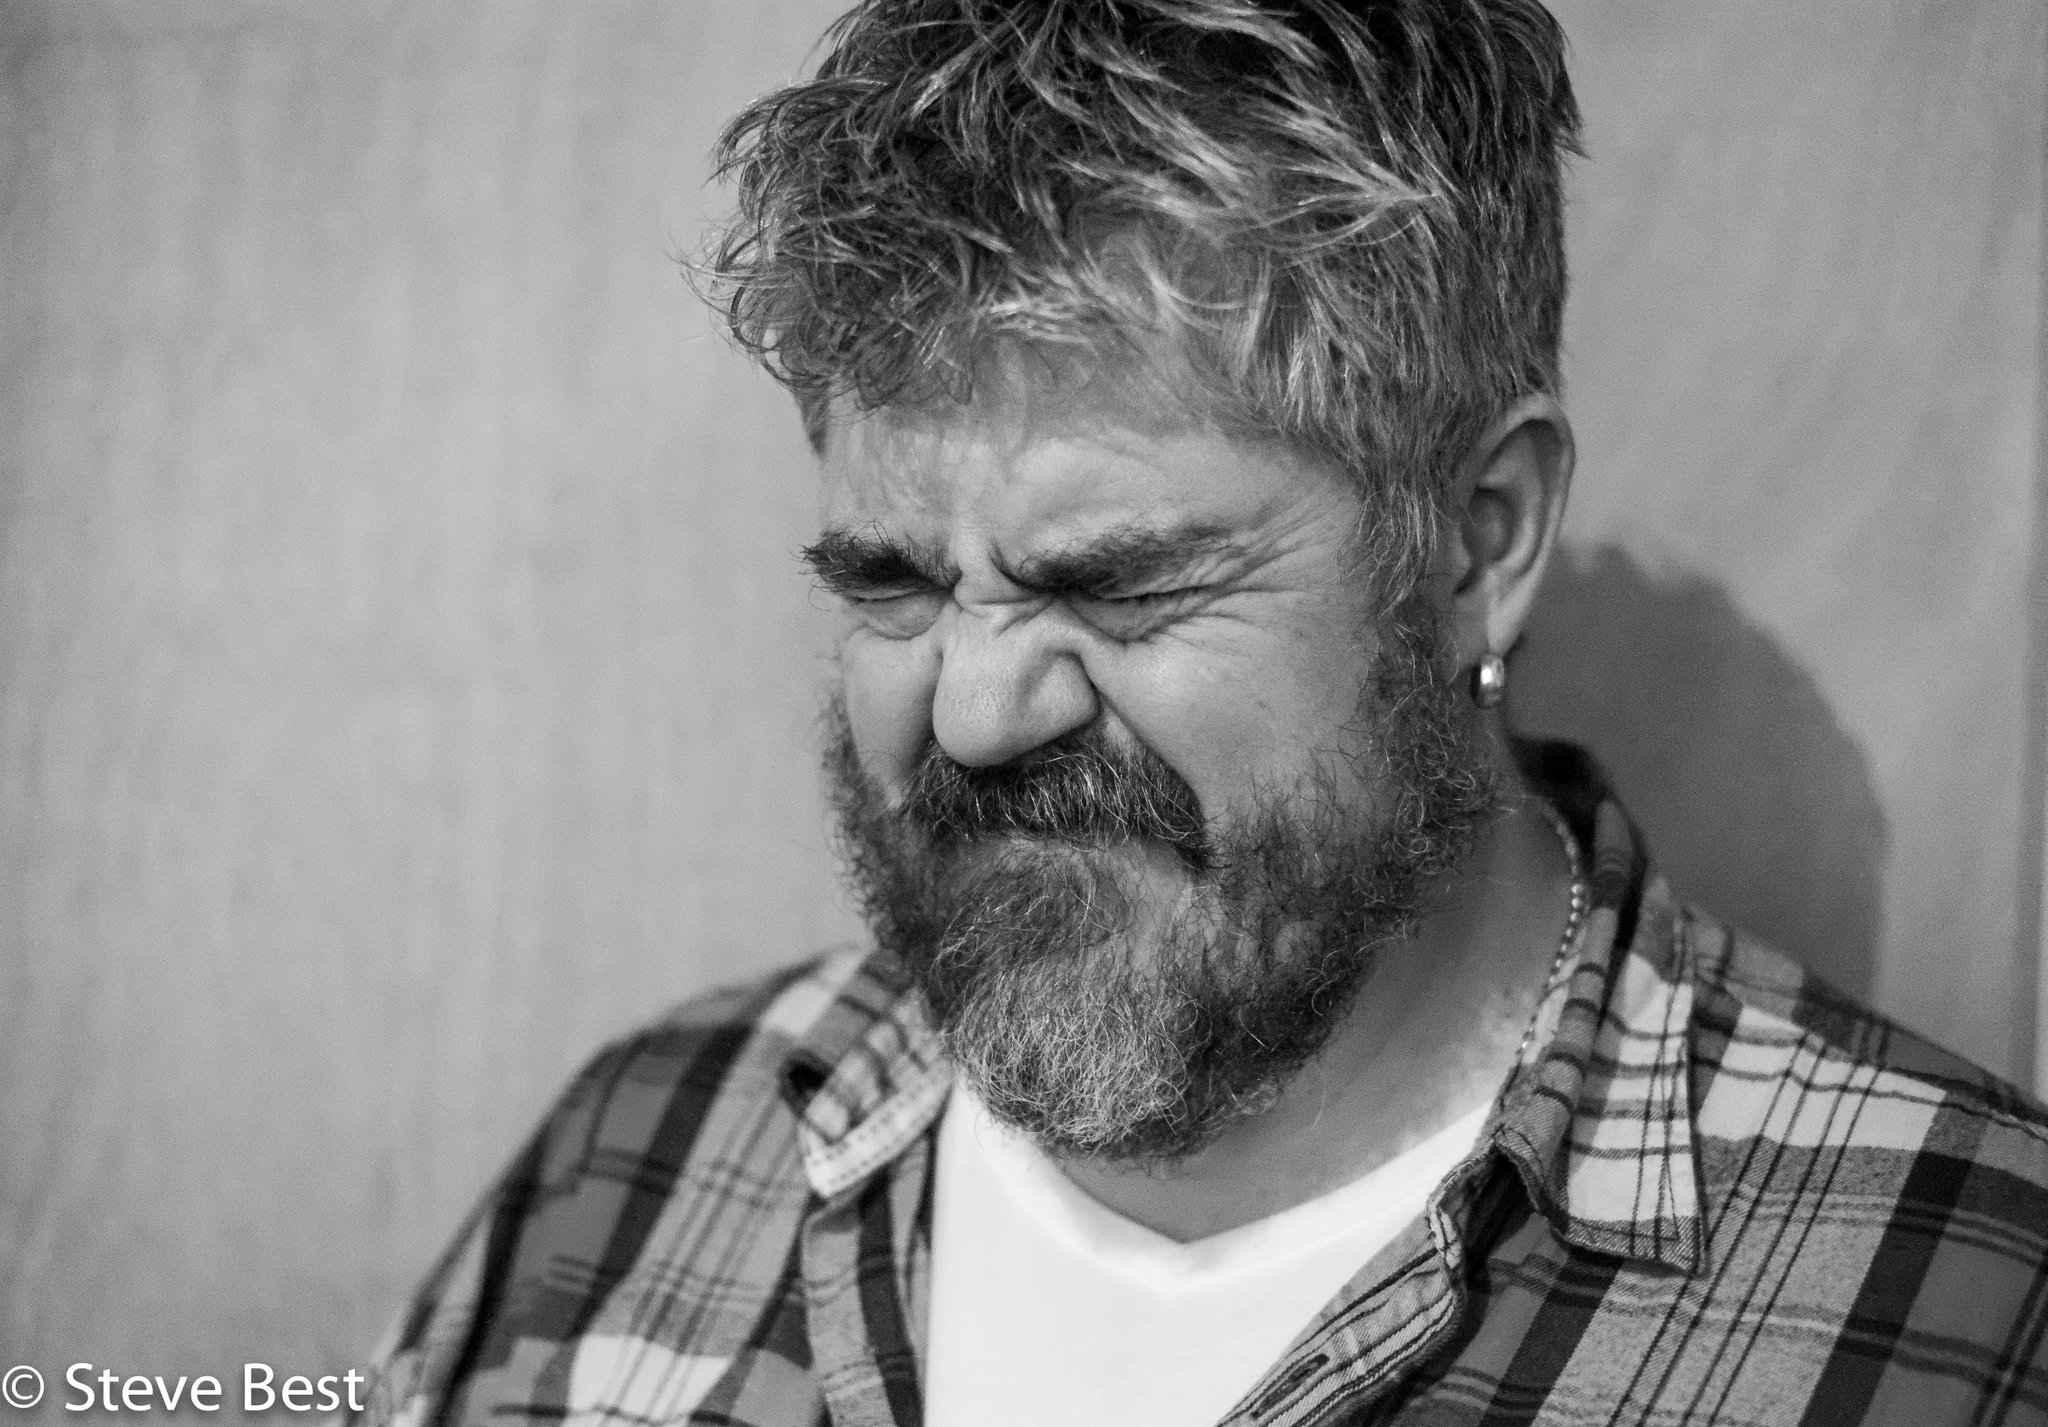 RT @SteveBestComic: .@jupitusphillip favourite meal is beans on toast #fact in https://t.co/4PPd1CmOat FunnyFriends at checkout £10 off! ht…